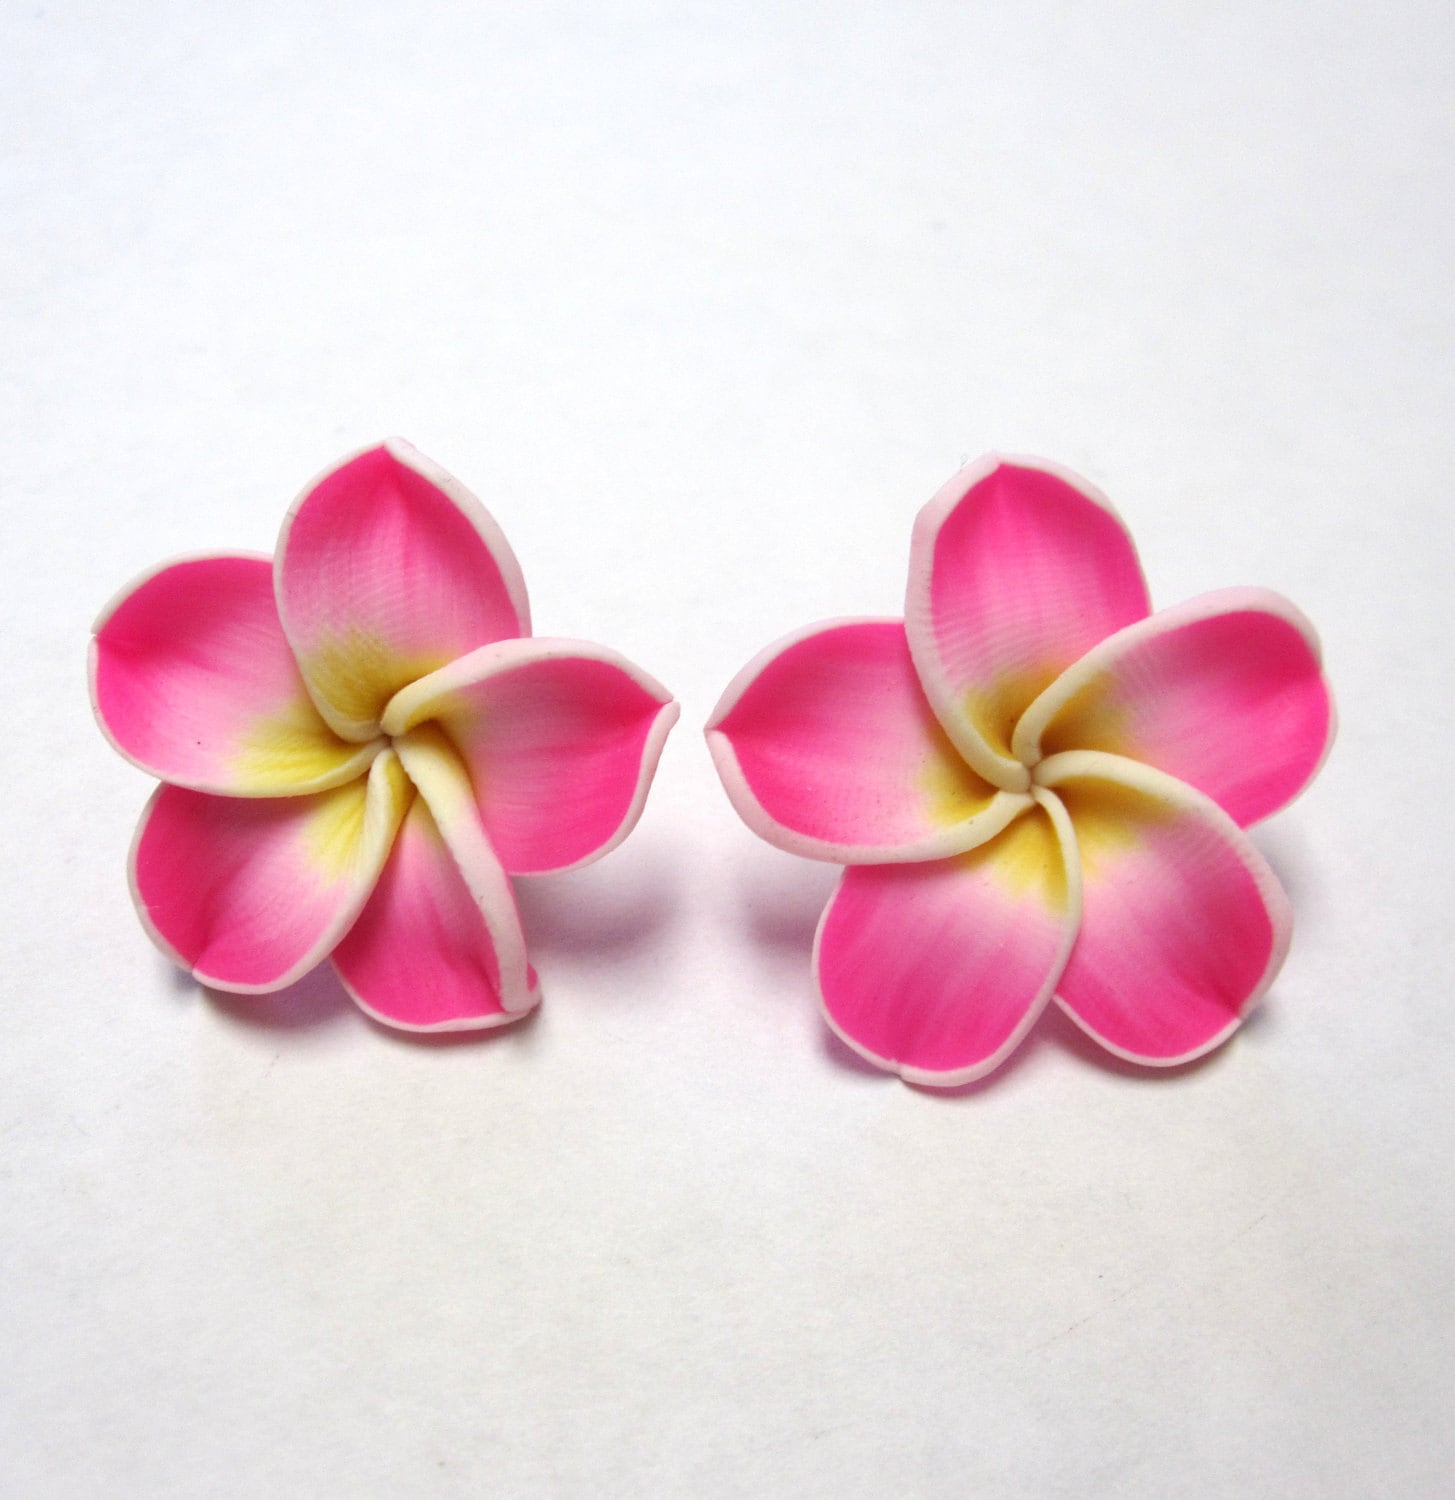 Hot Pink Flower Earrings Hibiscus Post Stud